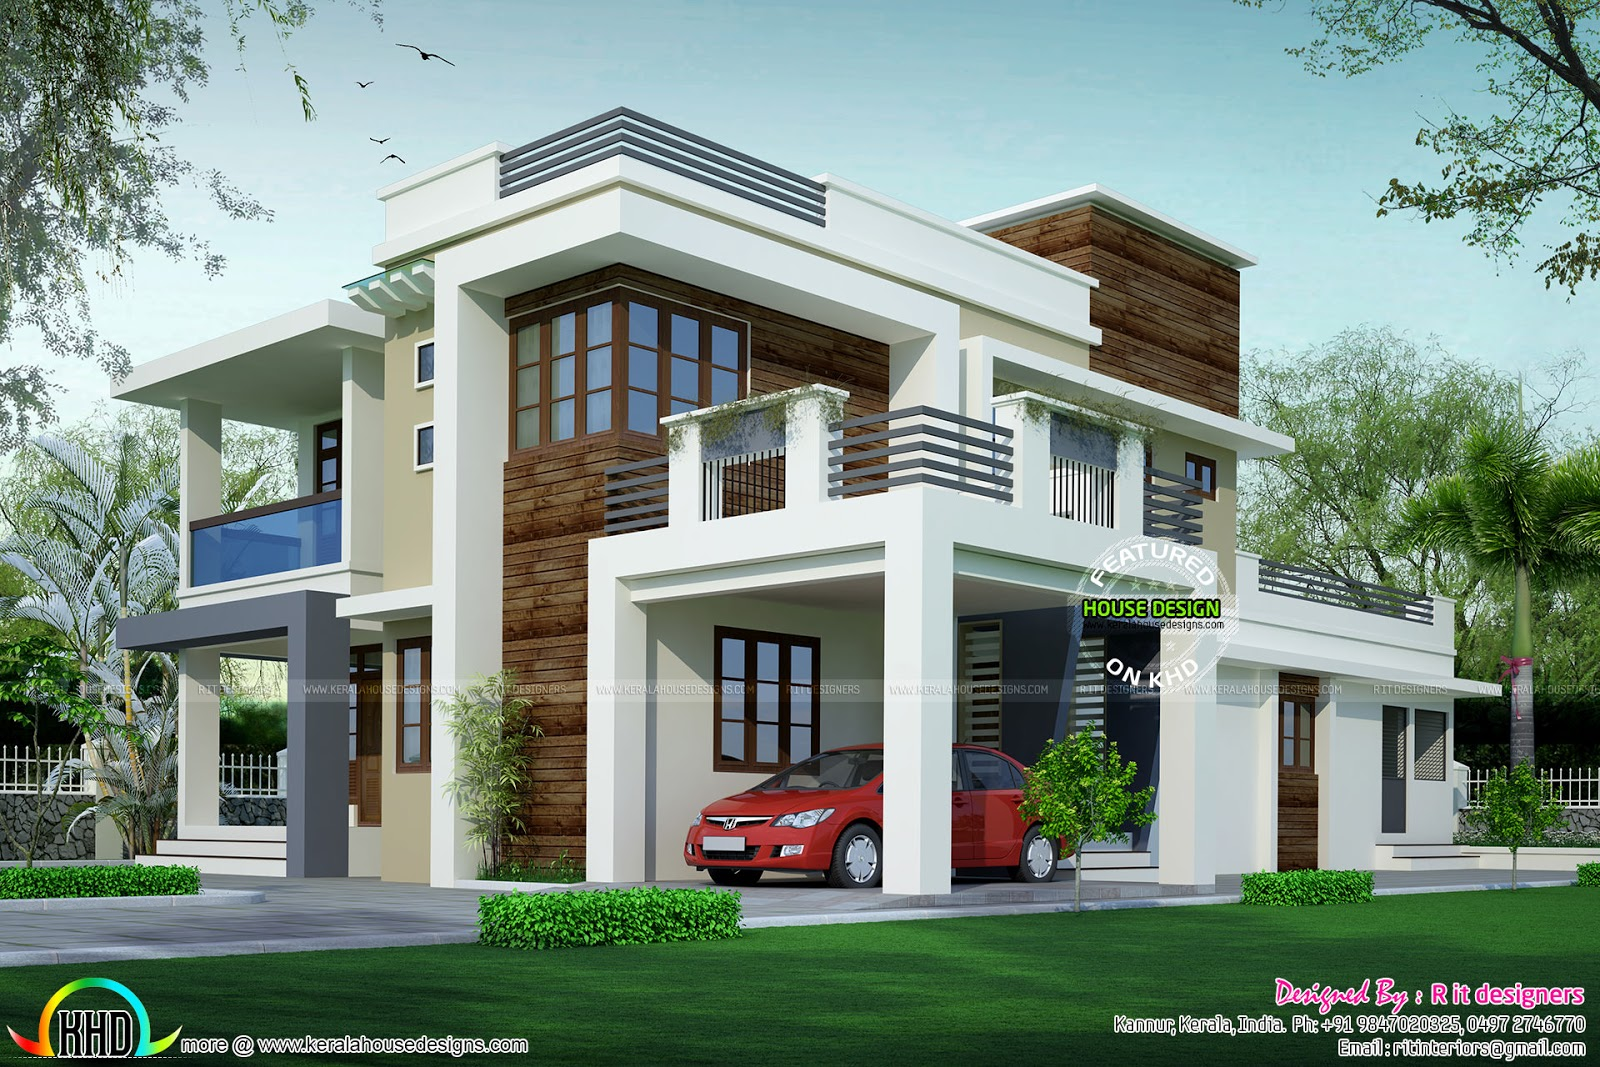 House design contemporary model kerala home design and for Modern kerala style house plans with photos